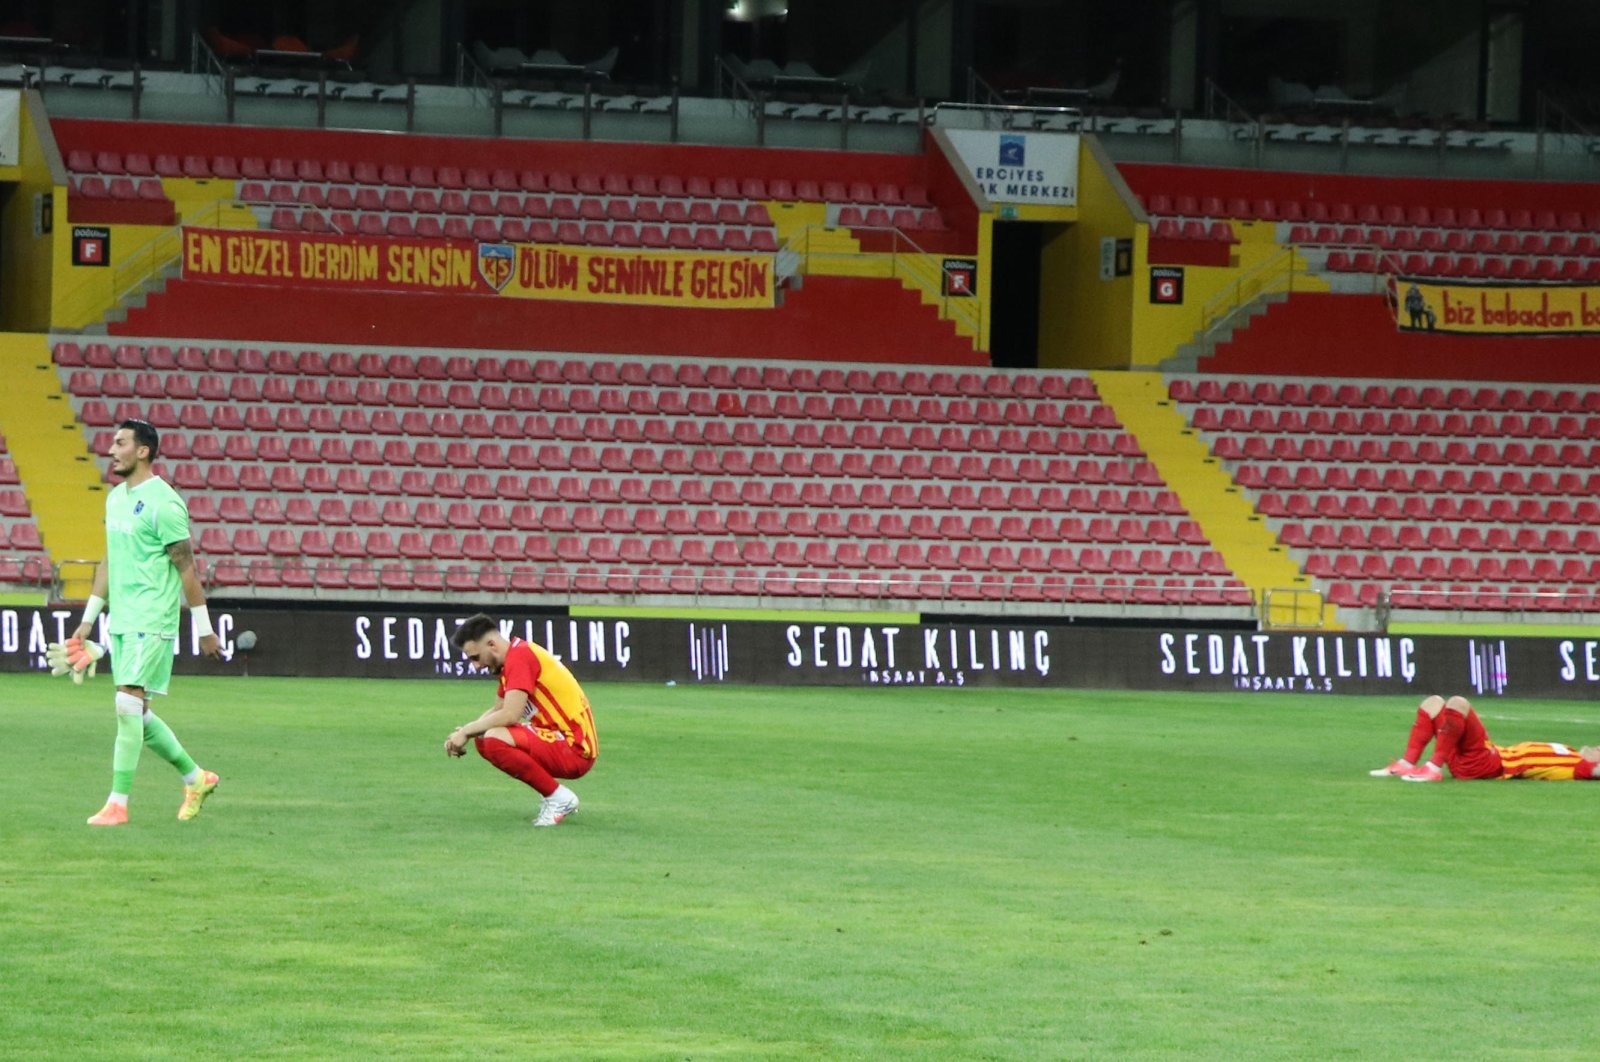 Kayserispor players react after losing a Süper Lig match against Trabzonspor in Kayseri, Turkey, July 25, 2020. (DHA Photo)